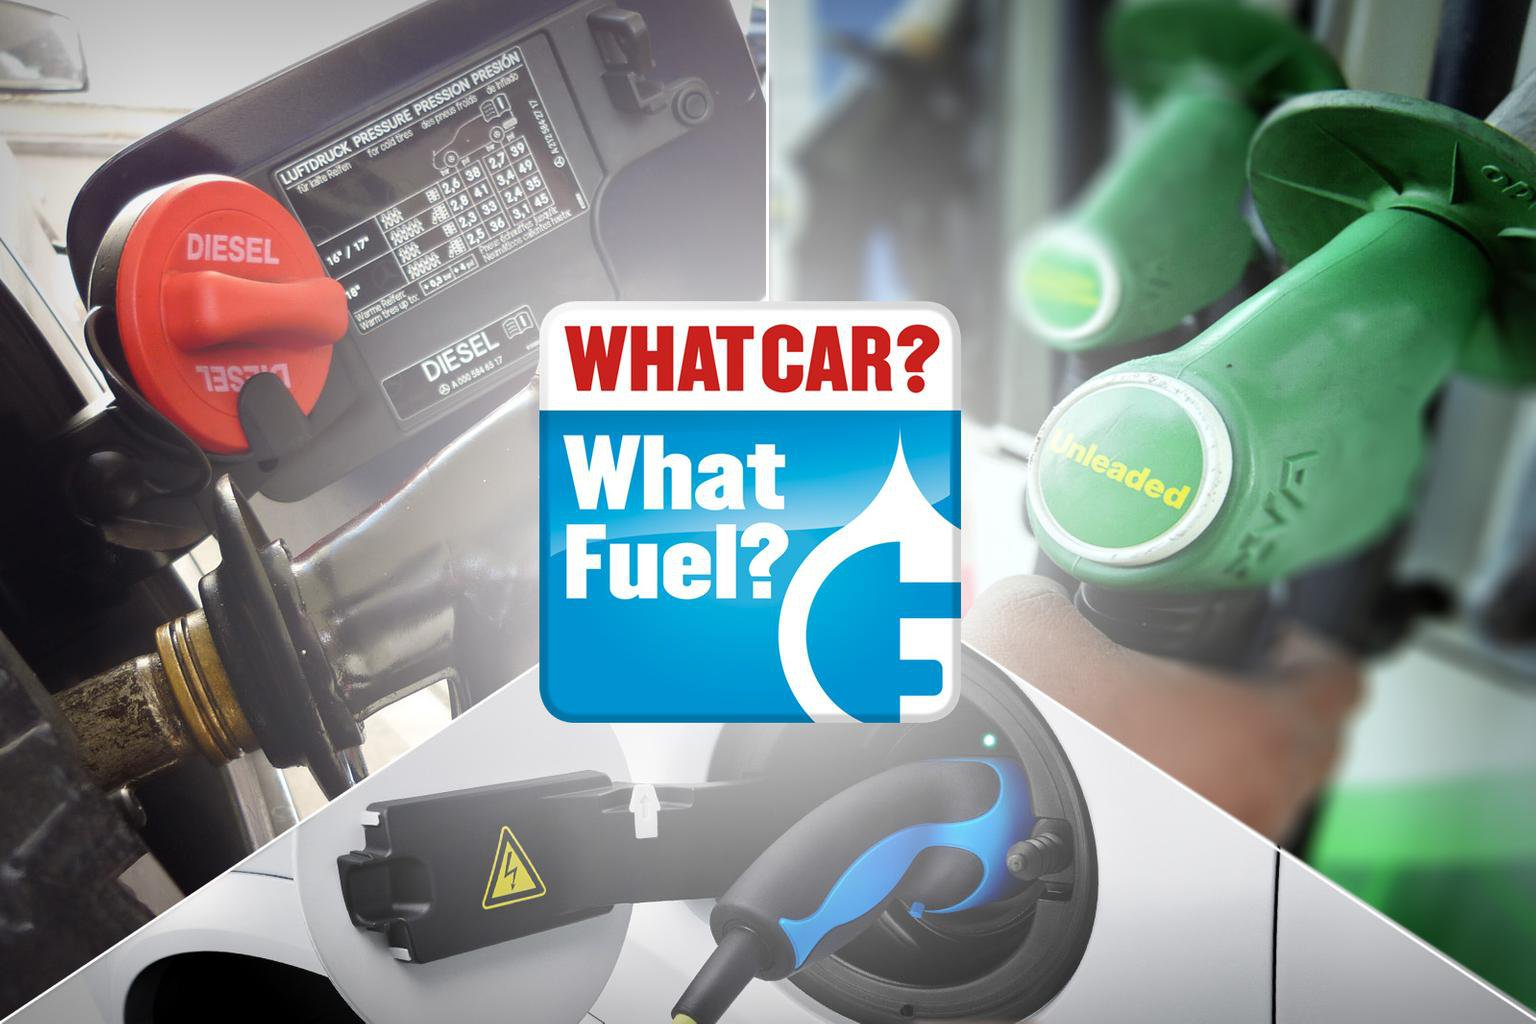 What Fuel? comparison tool